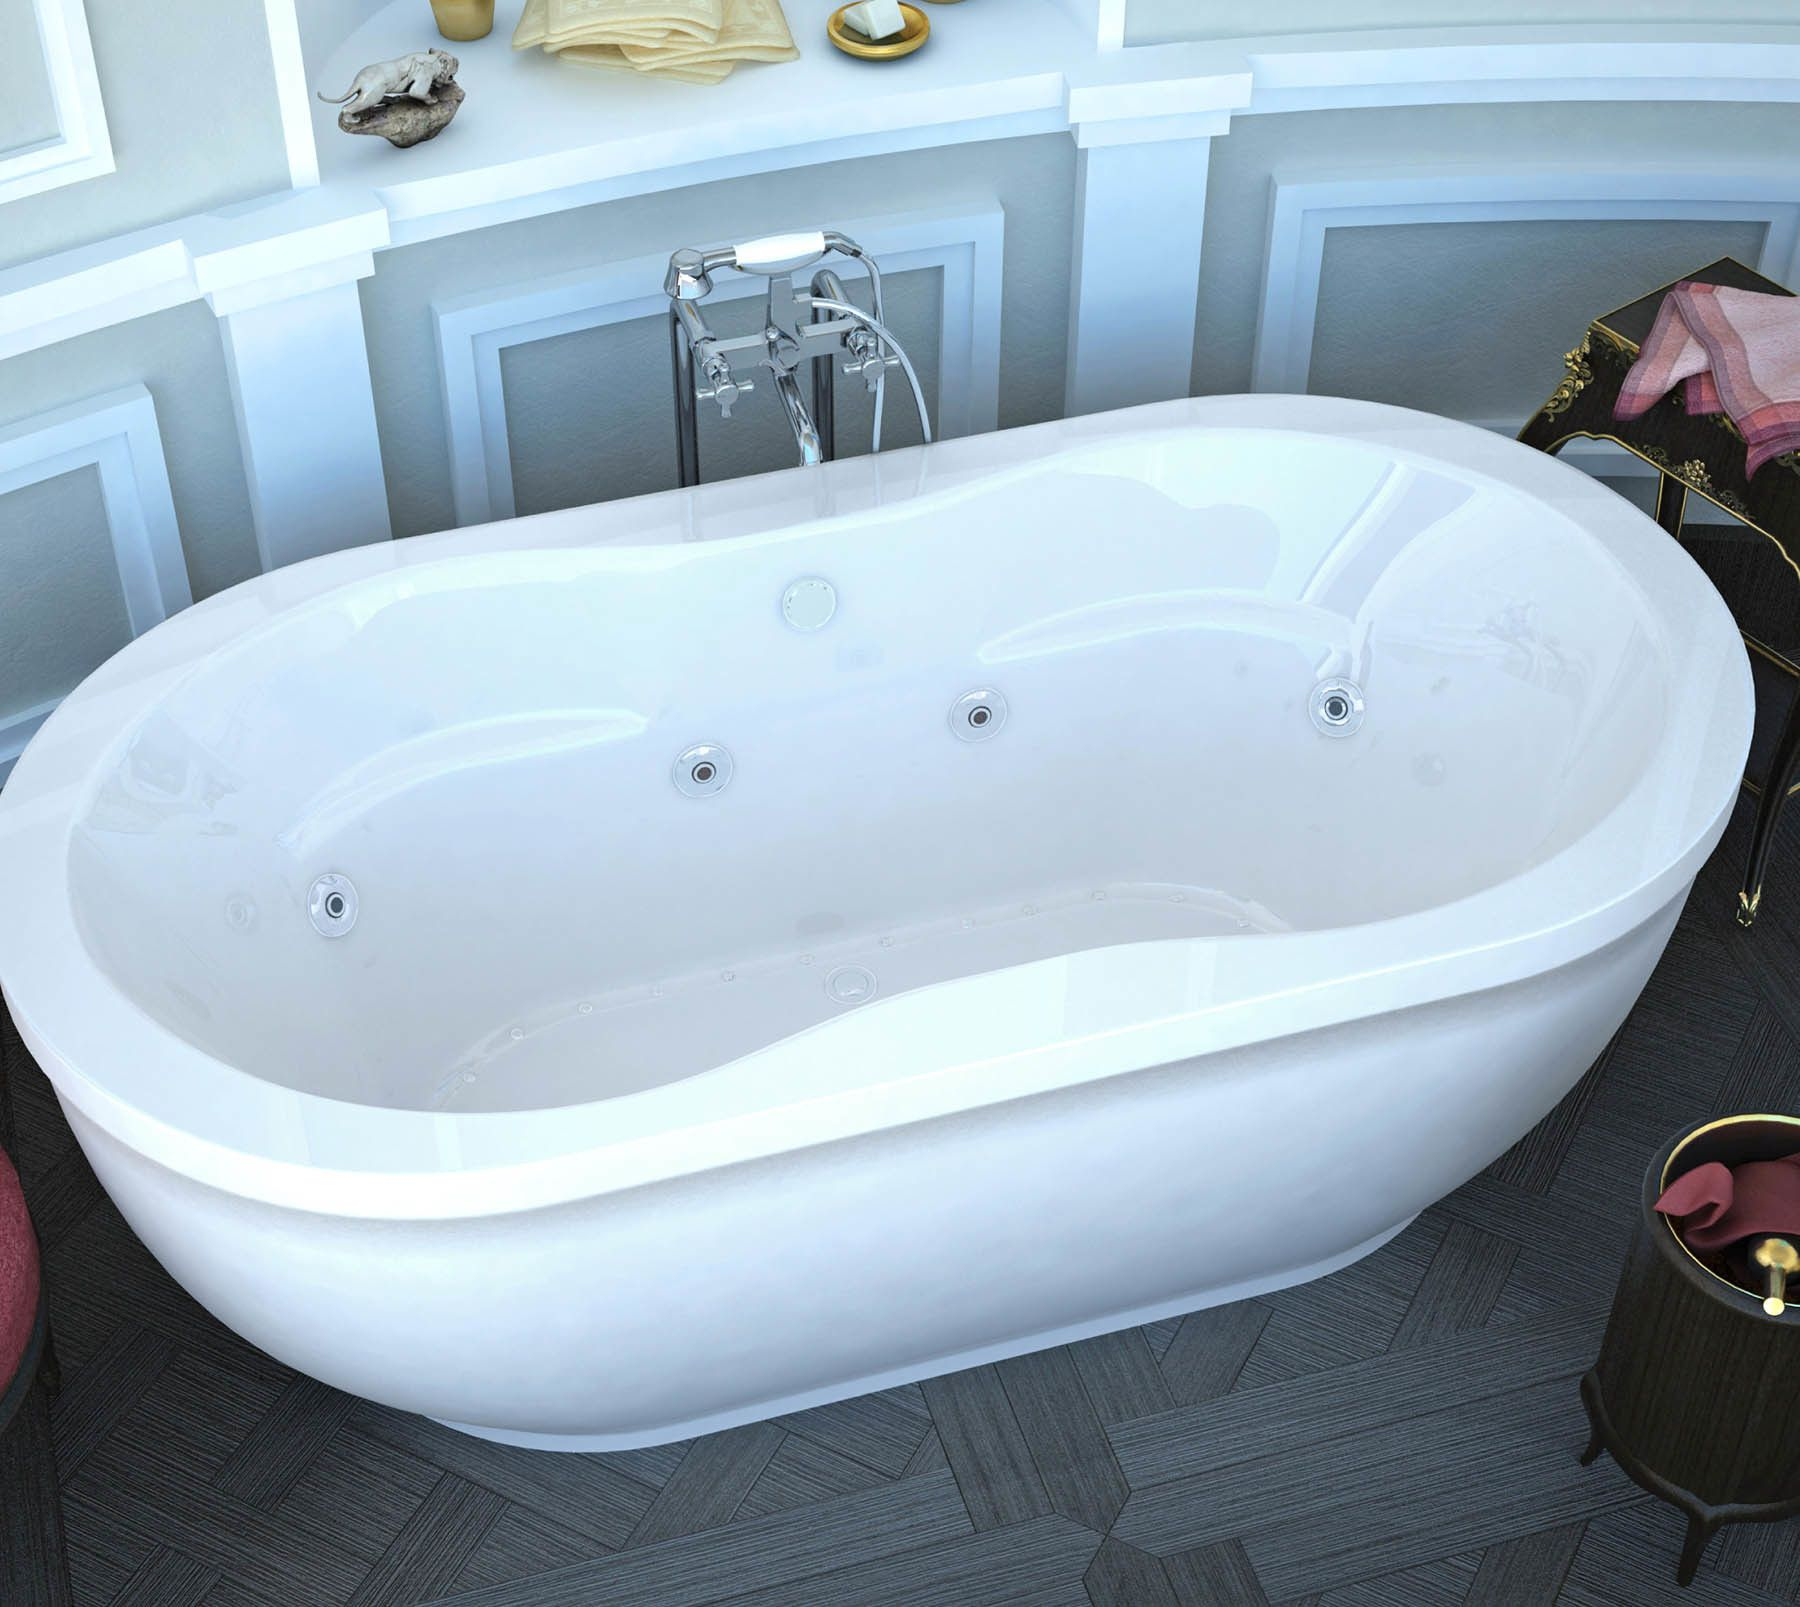 Shultz Air & Whirlpool Water Jetted Bathtub | Products | Pinterest ...